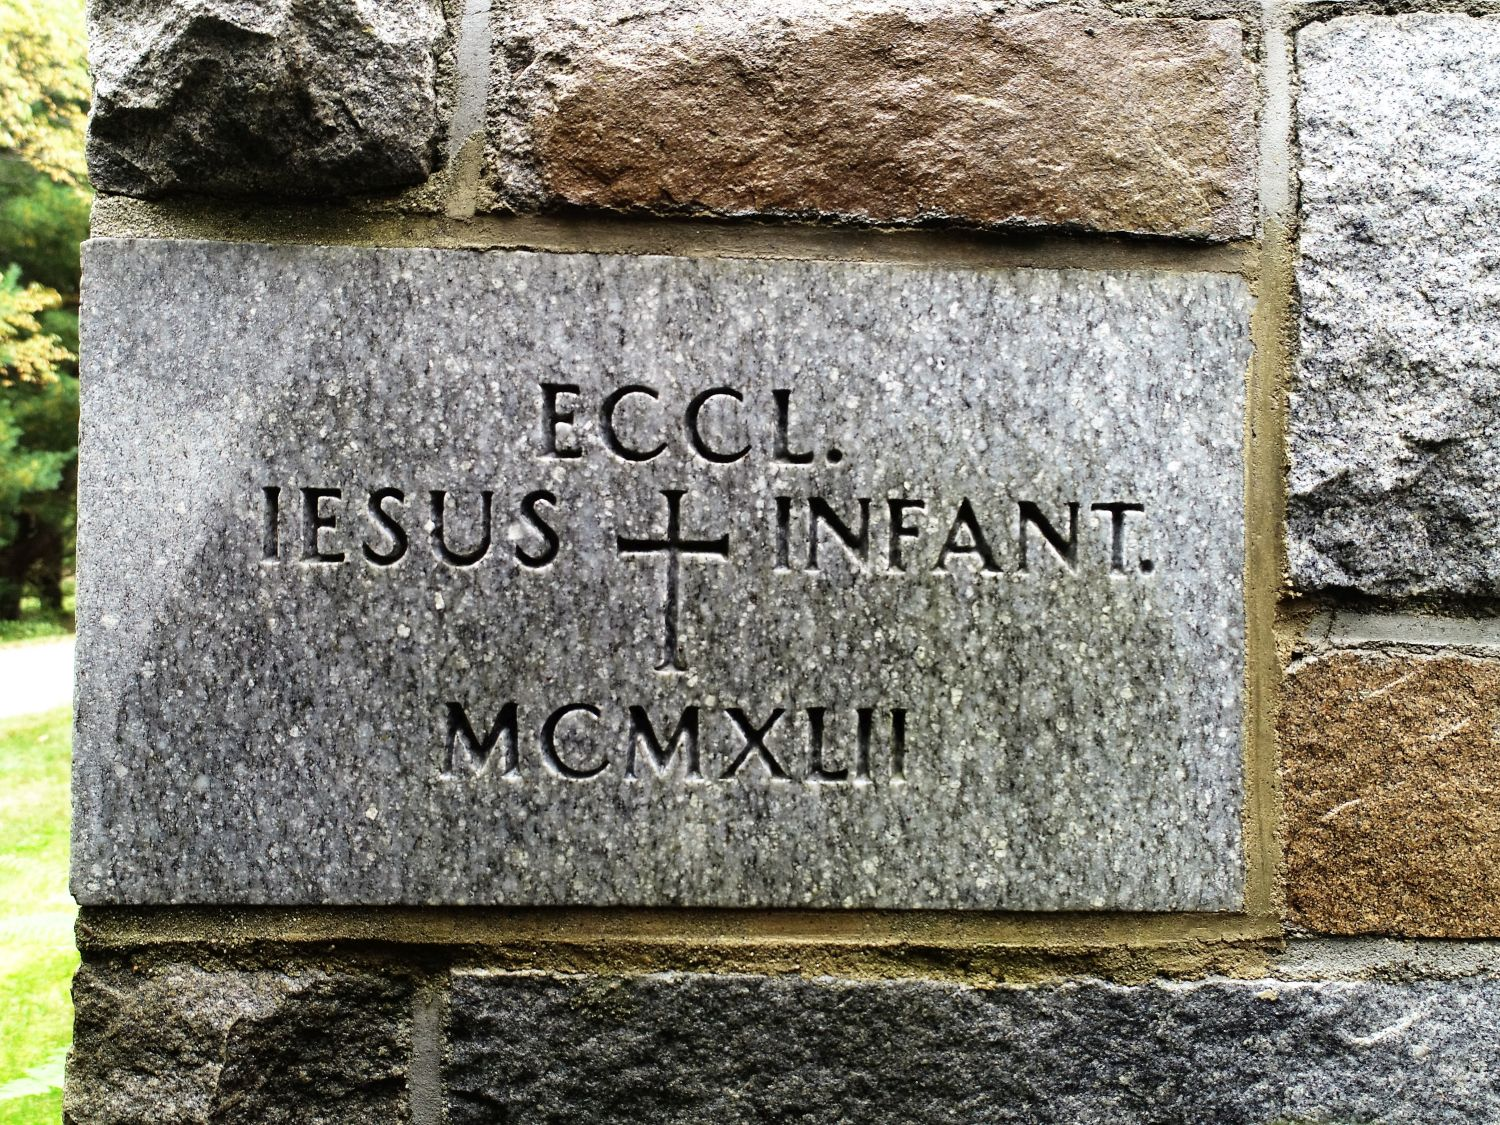 Stone Church Cornerstone